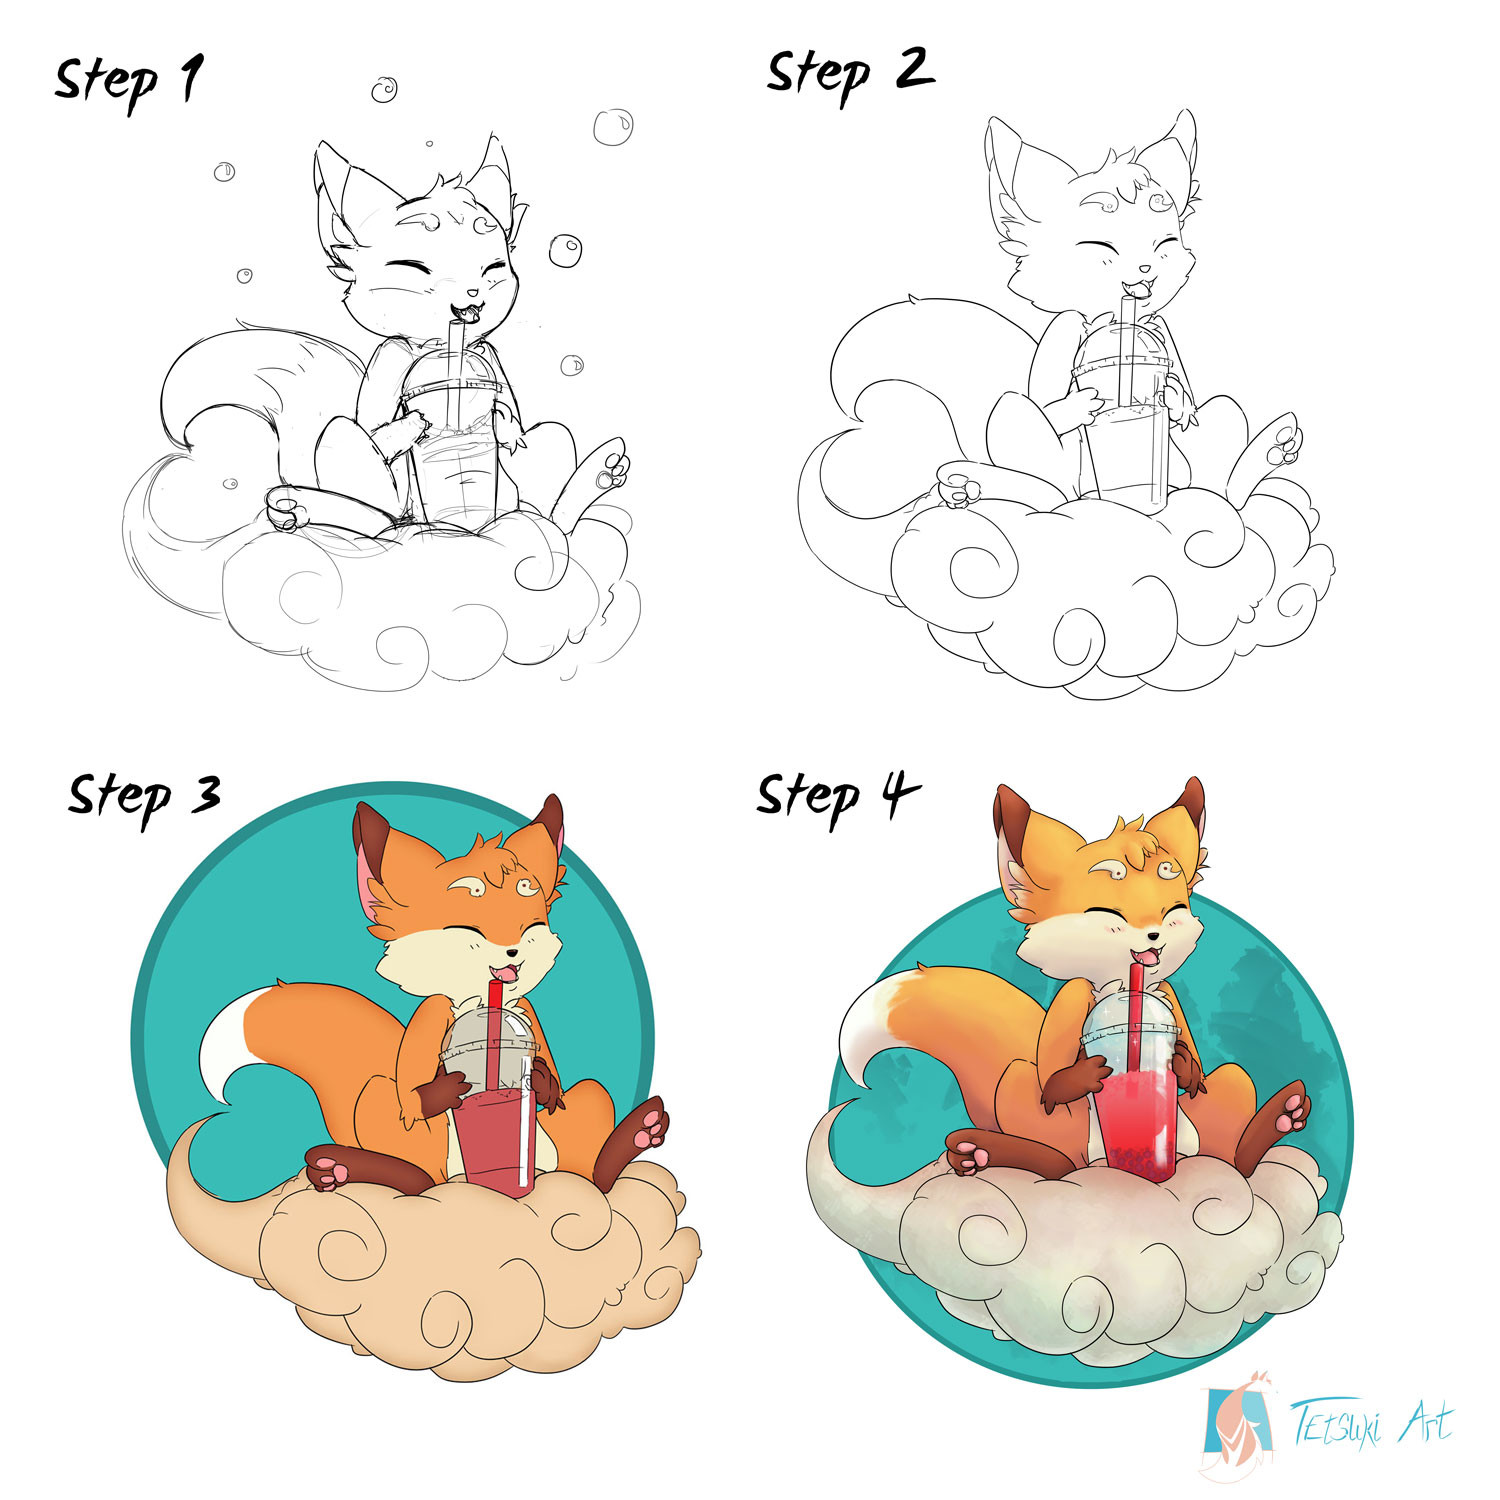 Step 1: Fast Sketch for concepts and idea